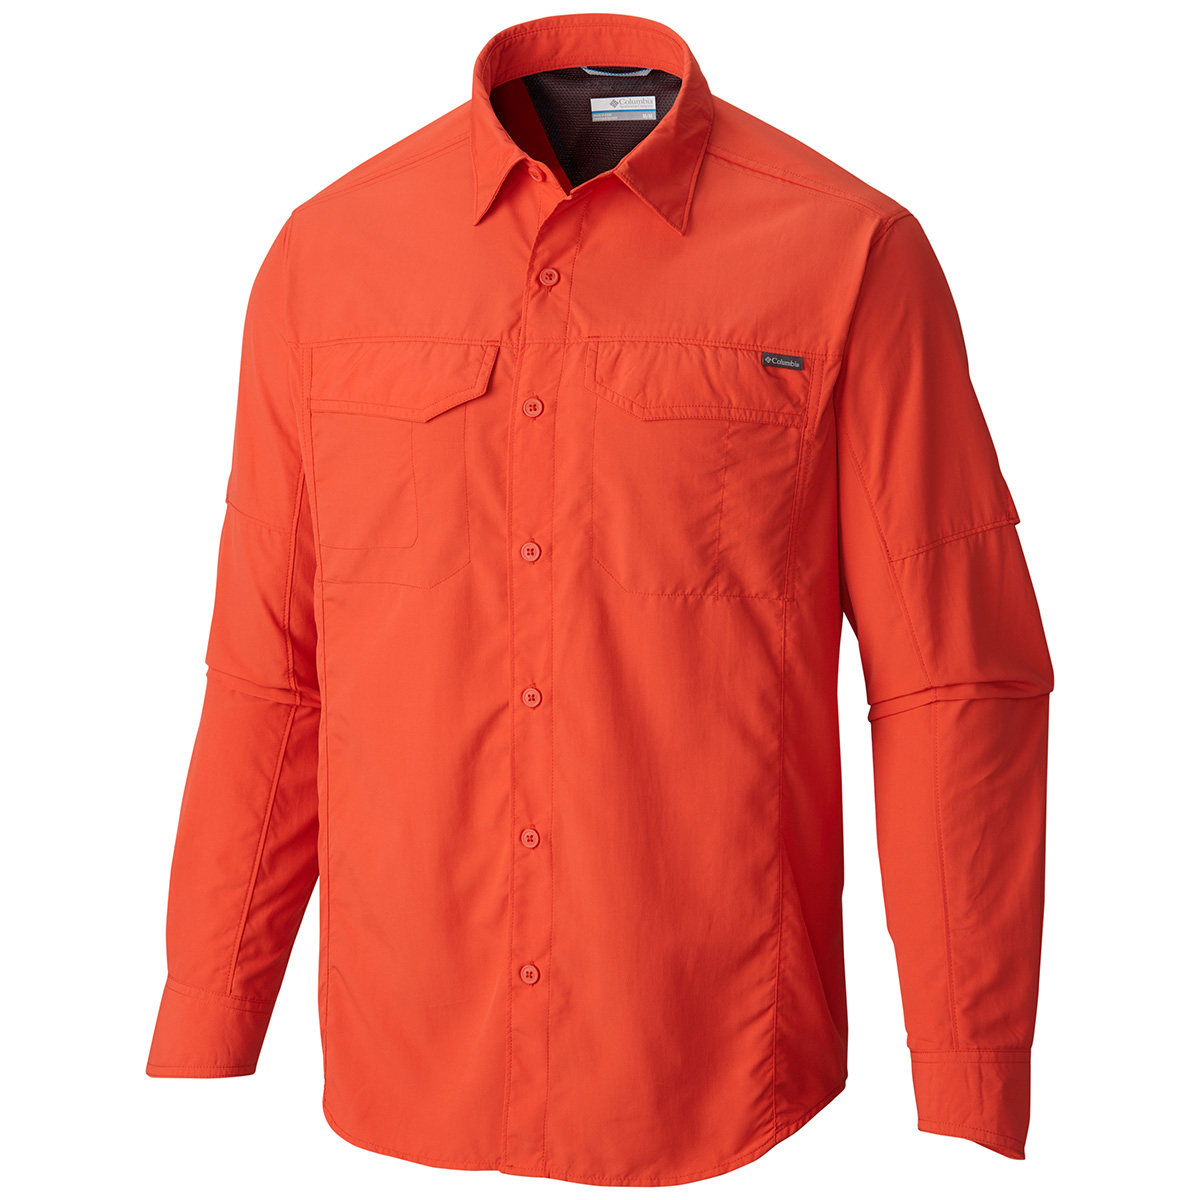 Find great deals on eBay for mens fishing shirts. Shop with confidence. Skip to main content. eBay: Related: mens fishing shirts xl mens fishing shirts large mens fishing shirts xxl mens fishing t shirts mens vented fishing shirts mens fishing tshirts mens fishing shirts small mens huk fishing shirts mens long sleeve fishing shirts mens.